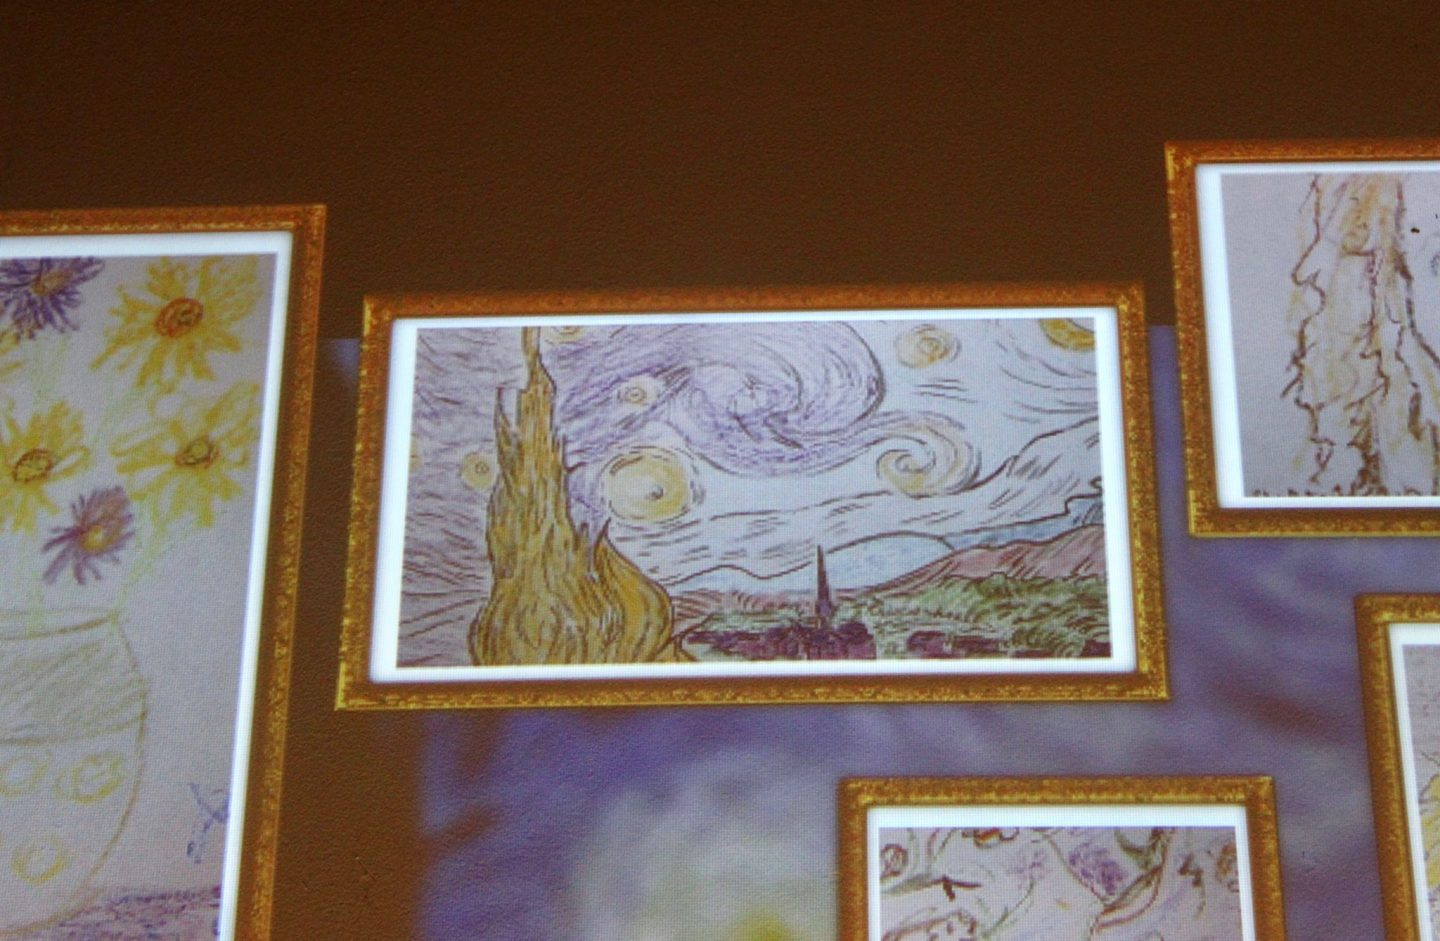 A picture frame showing a colouring in of Starry Night displayed on the wall at the Van Gogh immersive experience. The image doesn't use the traditional colours of Van Gogh's painting.